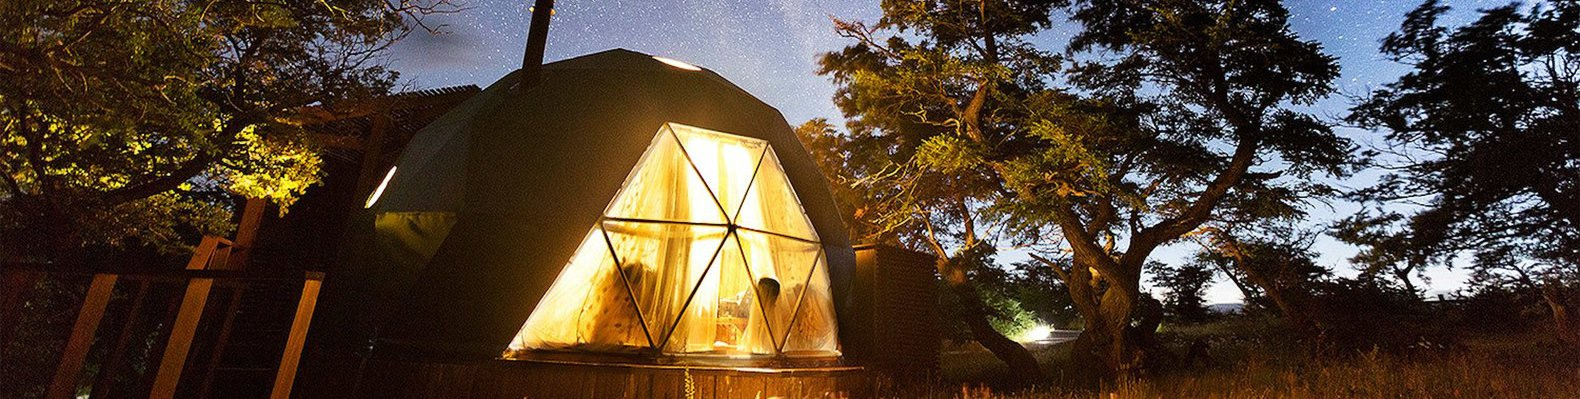 EcoCamp Patagonia, sustainable hotel, Torres del Paine National Park, geodesic domes, geodesic dome hotels, eco hotels, sustainable hotels, sustainable geodesic domes, hotels in patagonia, glamping patagonia, patagonia domes, chile glamping, glamping in chile, sustainable glamping, eco camps patagonia, renewable energy, sustainable hotels, sustainable glamping